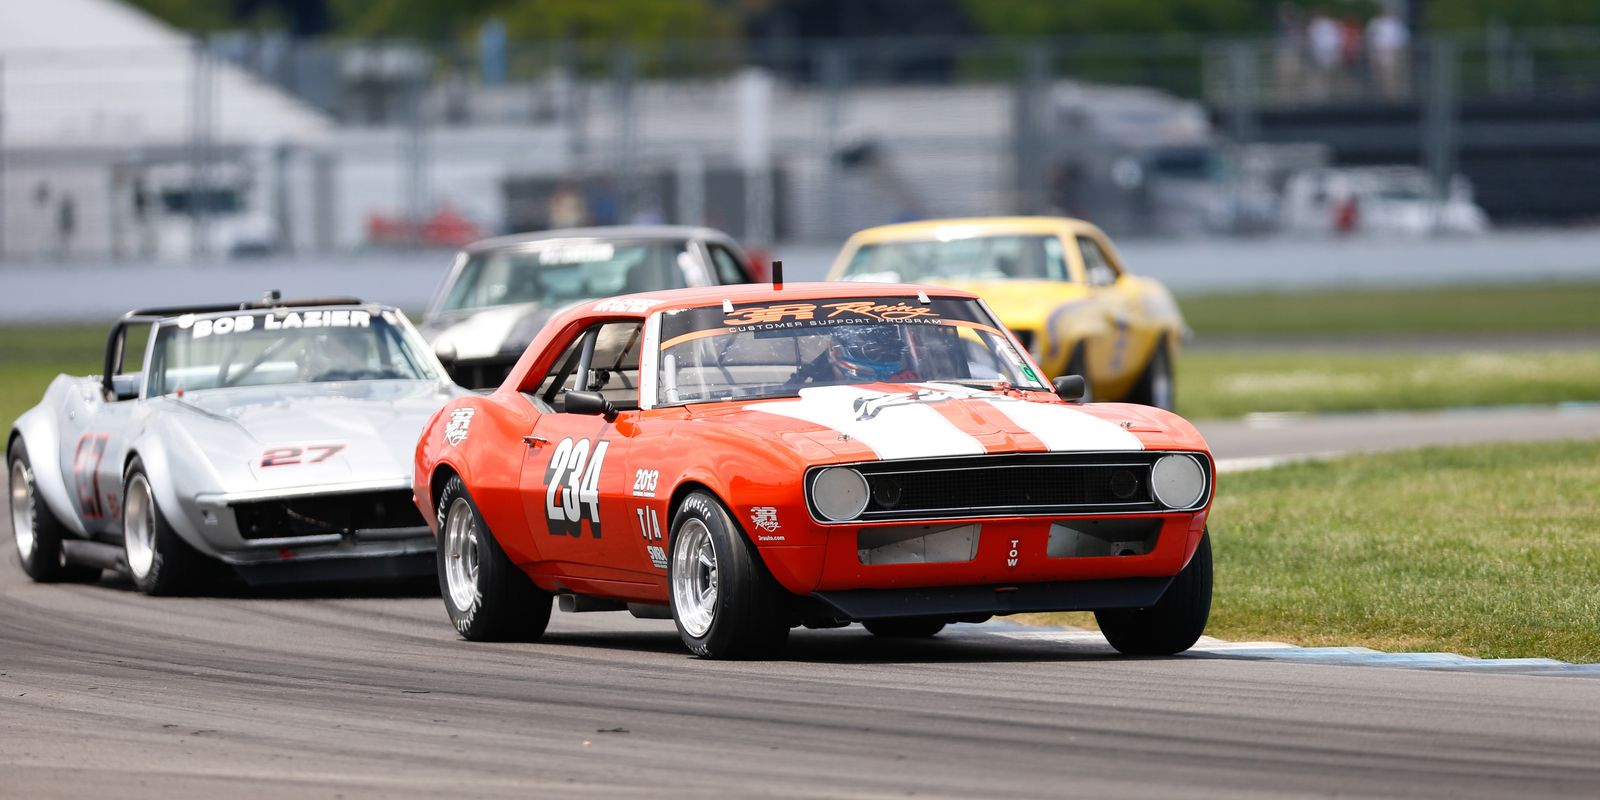 Gallery: Top 25 shots from the Brickyard Vintage Racing Invitational ...